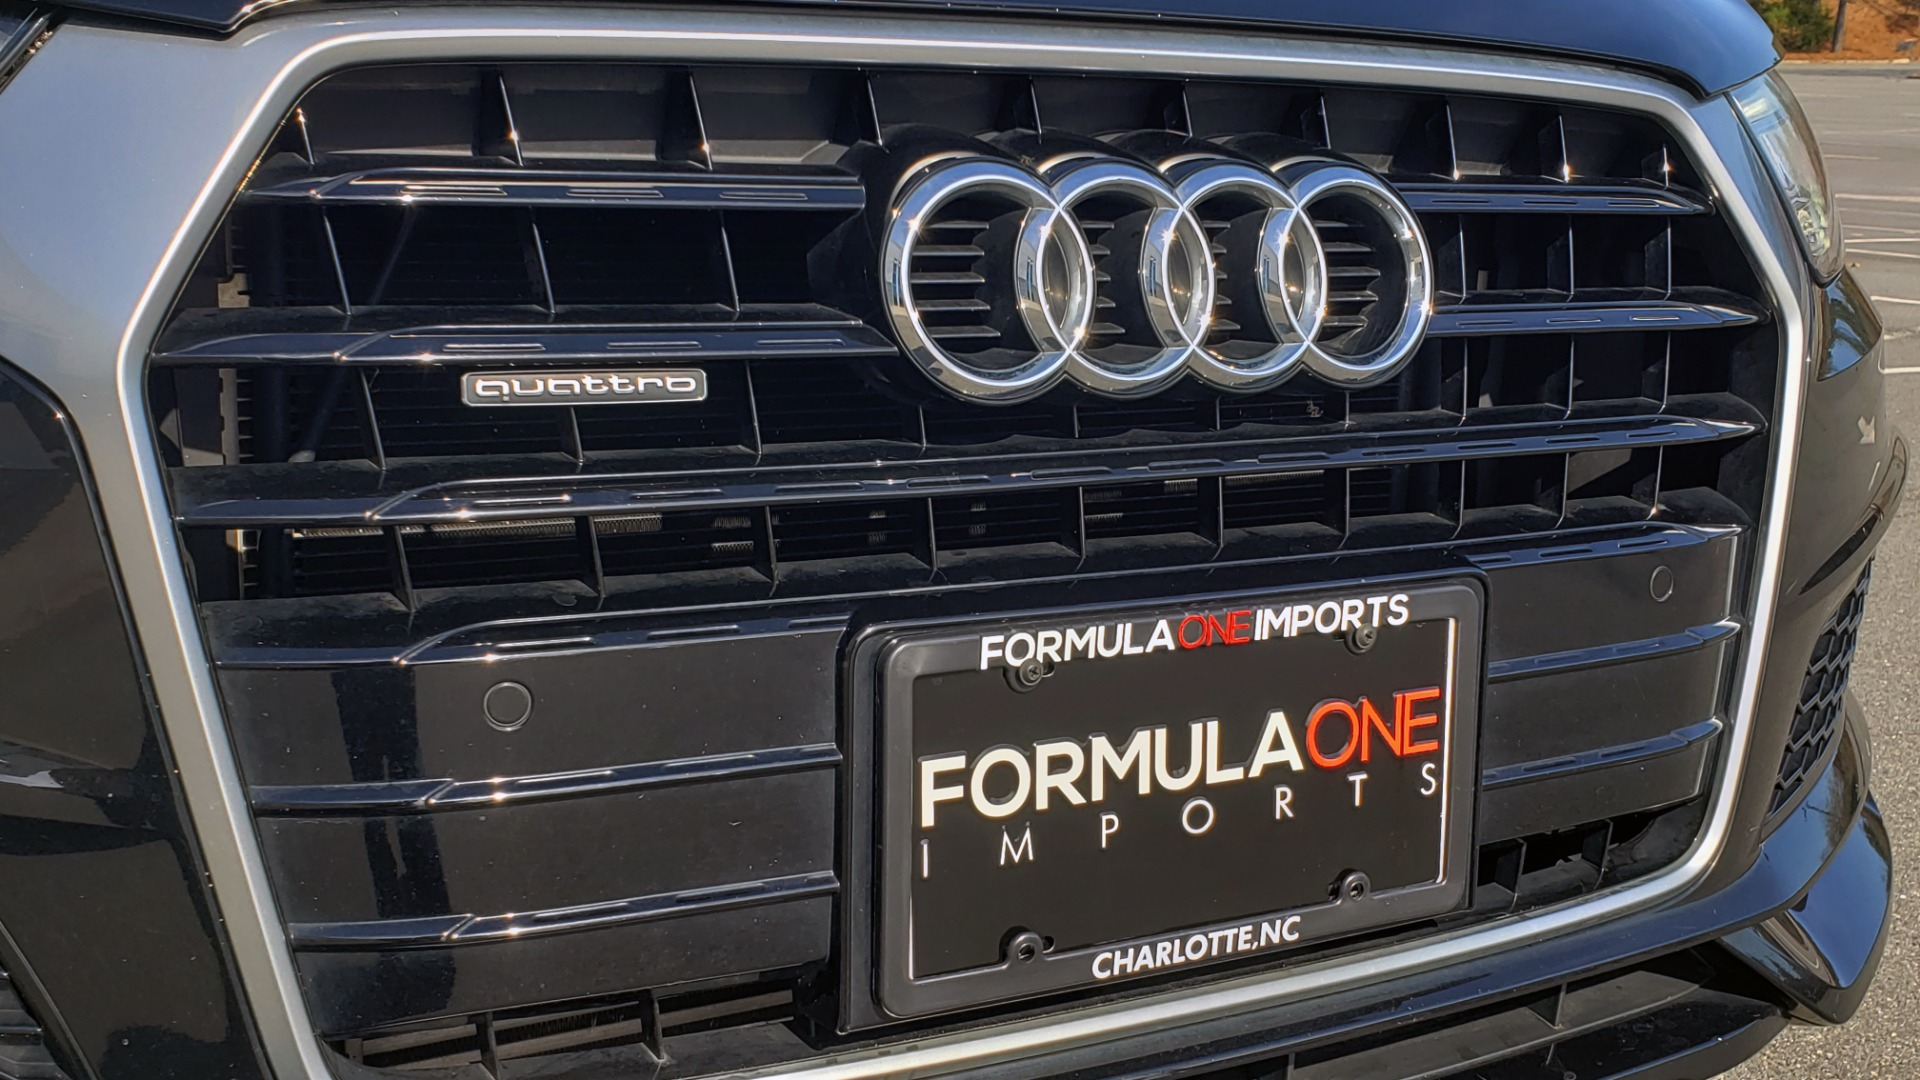 Used 2018 Audi Q3 SPORT PREMIUM PLUS / TECHNOLOGY / SUNROOF / BOSE / REARVIEW for sale Sold at Formula Imports in Charlotte NC 28227 23